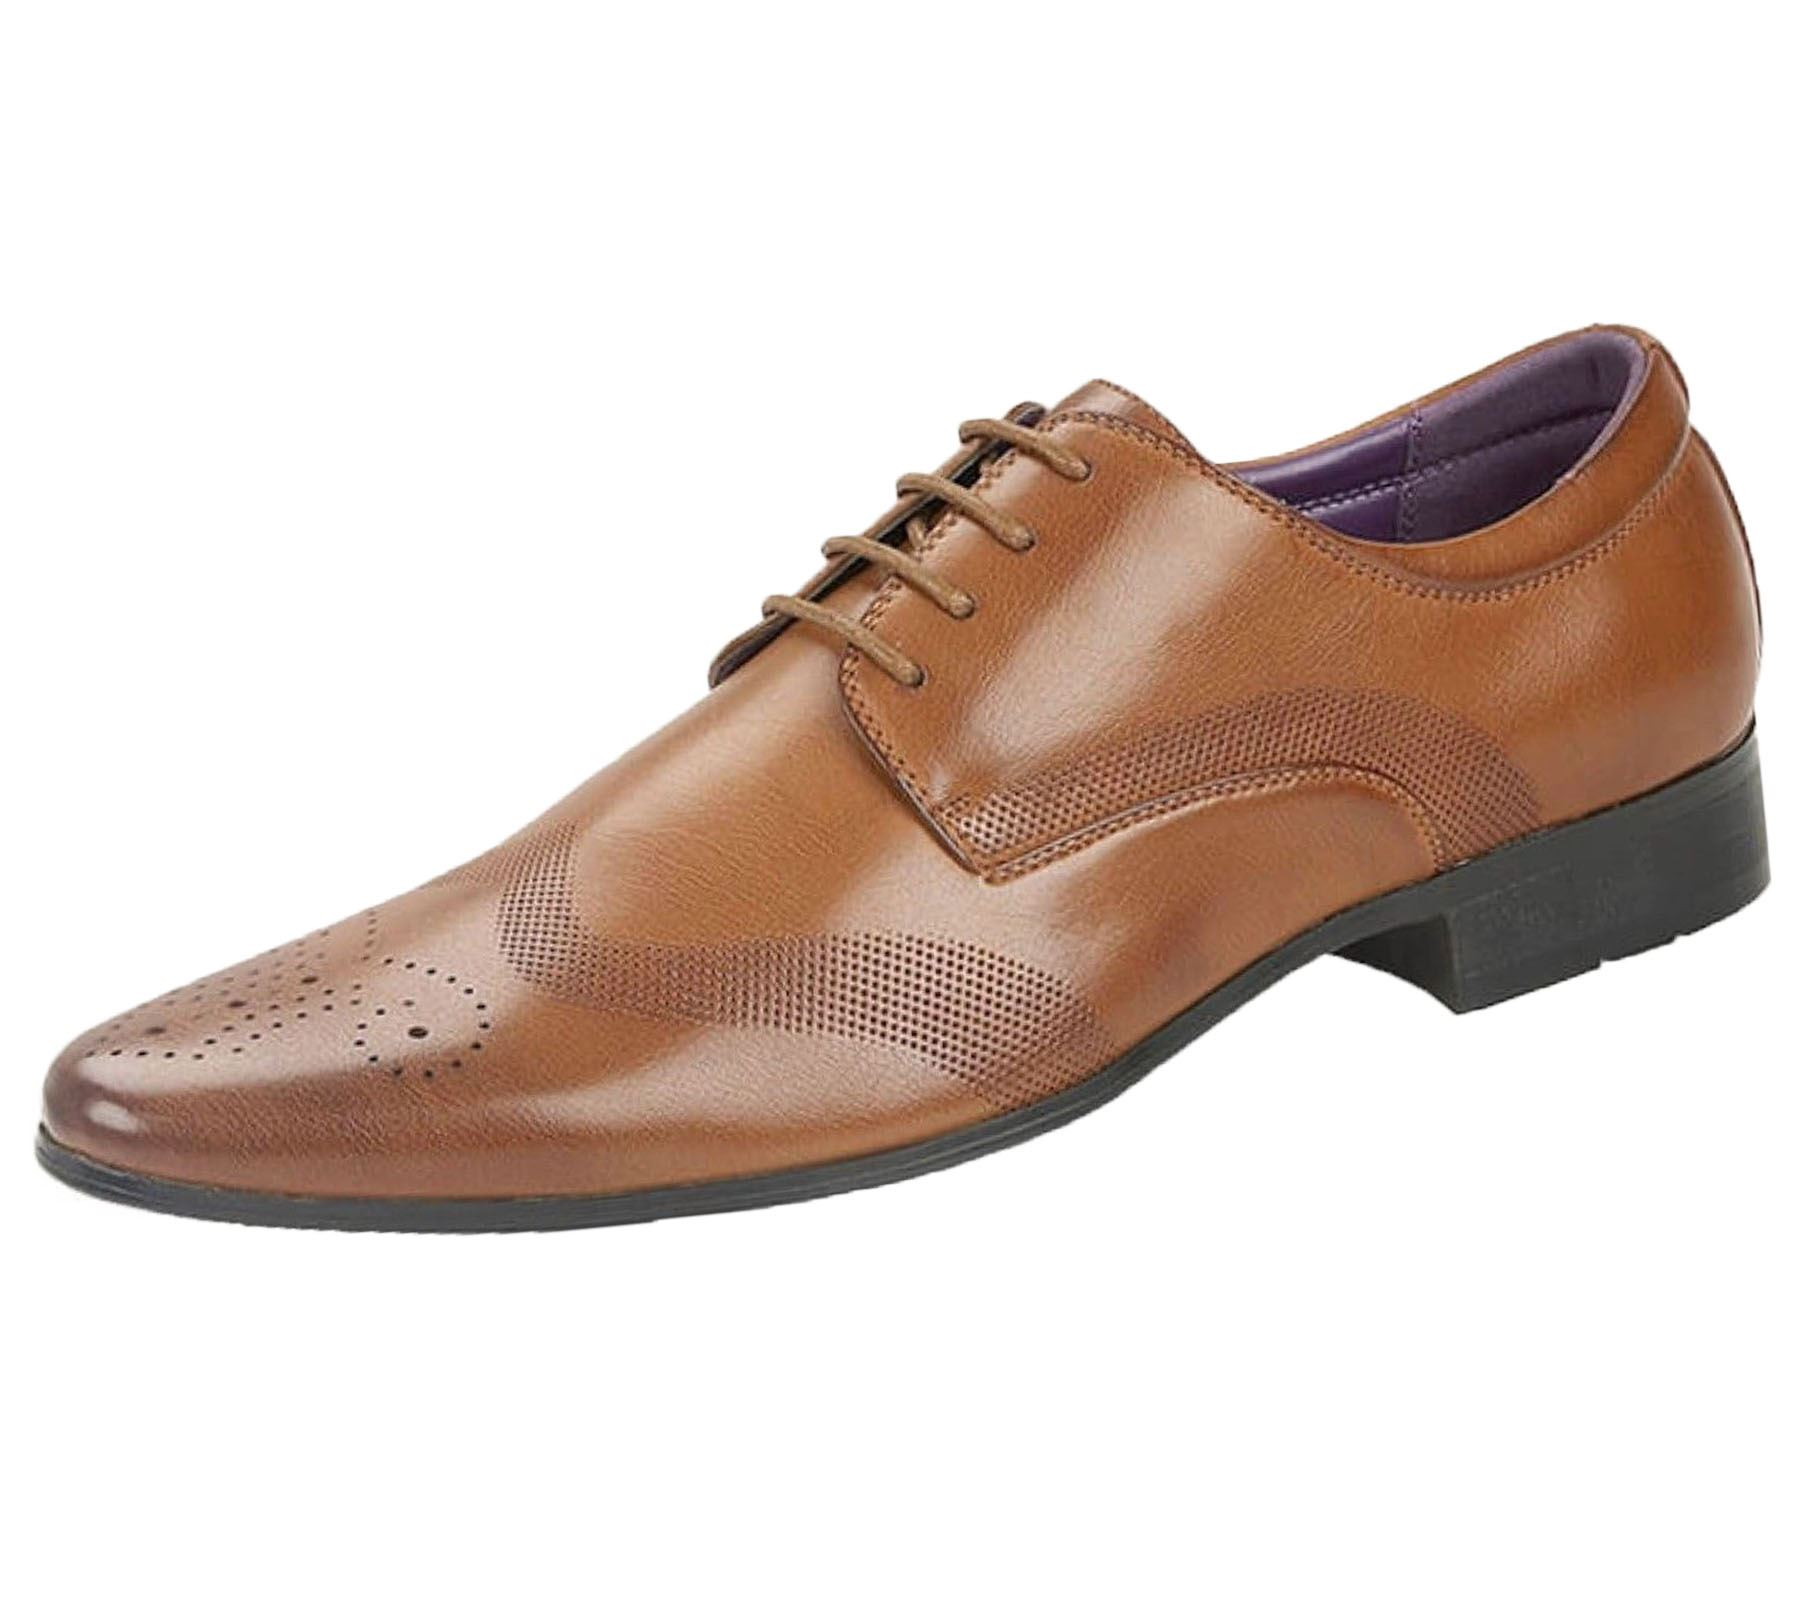 Mens-Brogues-Shoes-Office-Wedding-Formal-Smart-Dress-Shoes-New-Size miniatura 19